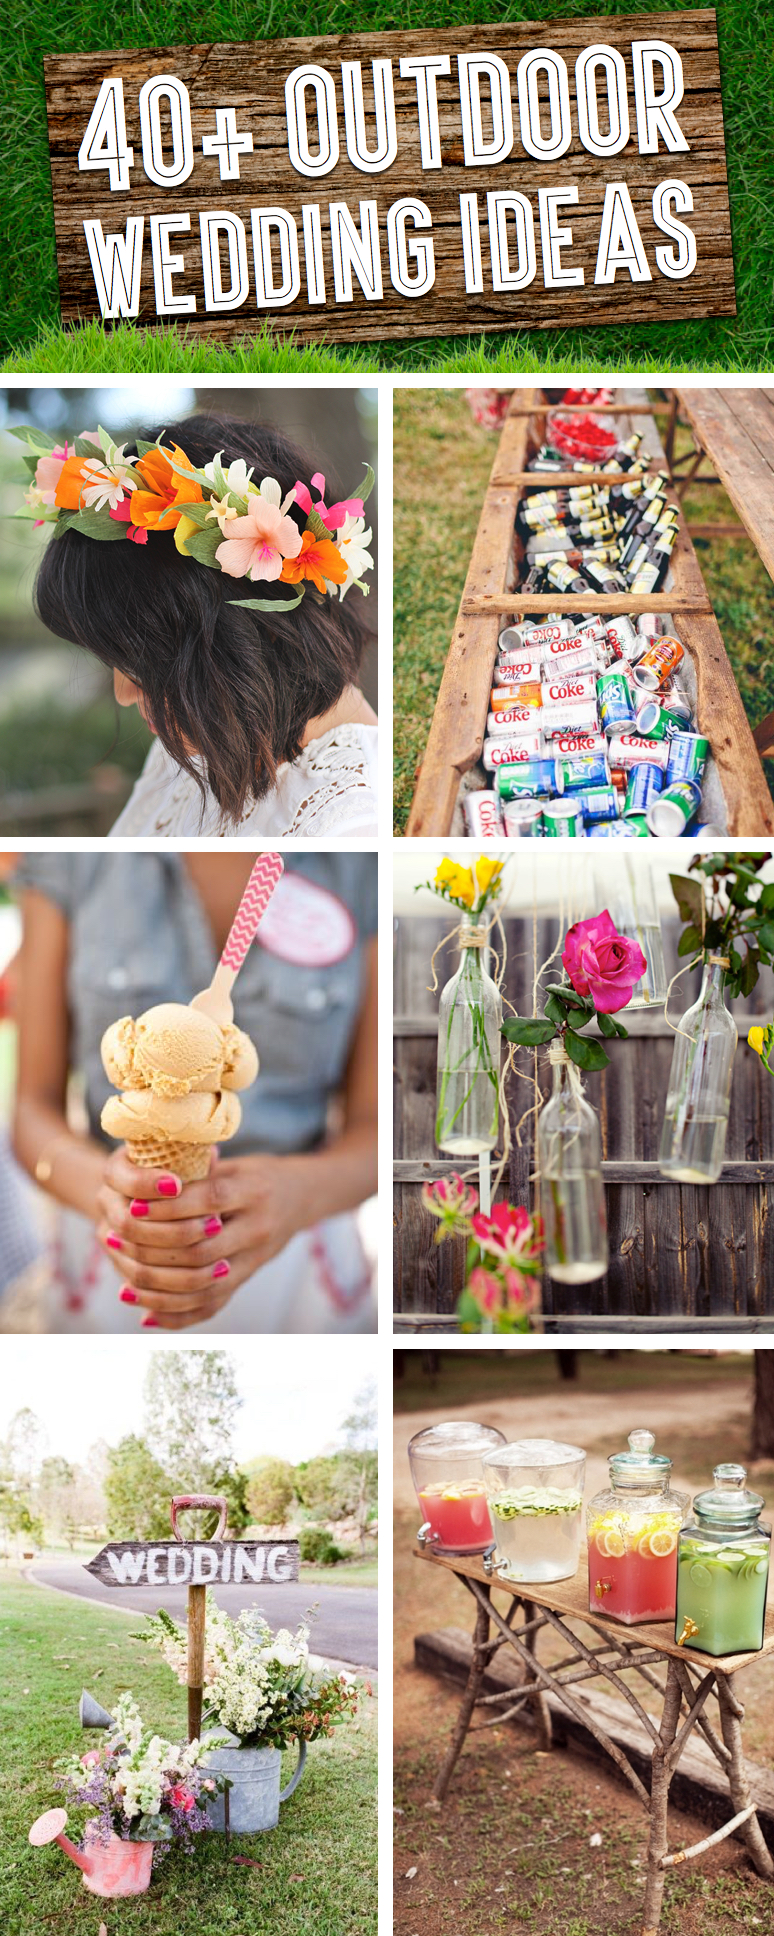 40 breathtaking diy vintage ideas for an outdoor wedding cute diy 40 breathtaking diy vintage ideas for an outdoor wedding junglespirit Choice Image